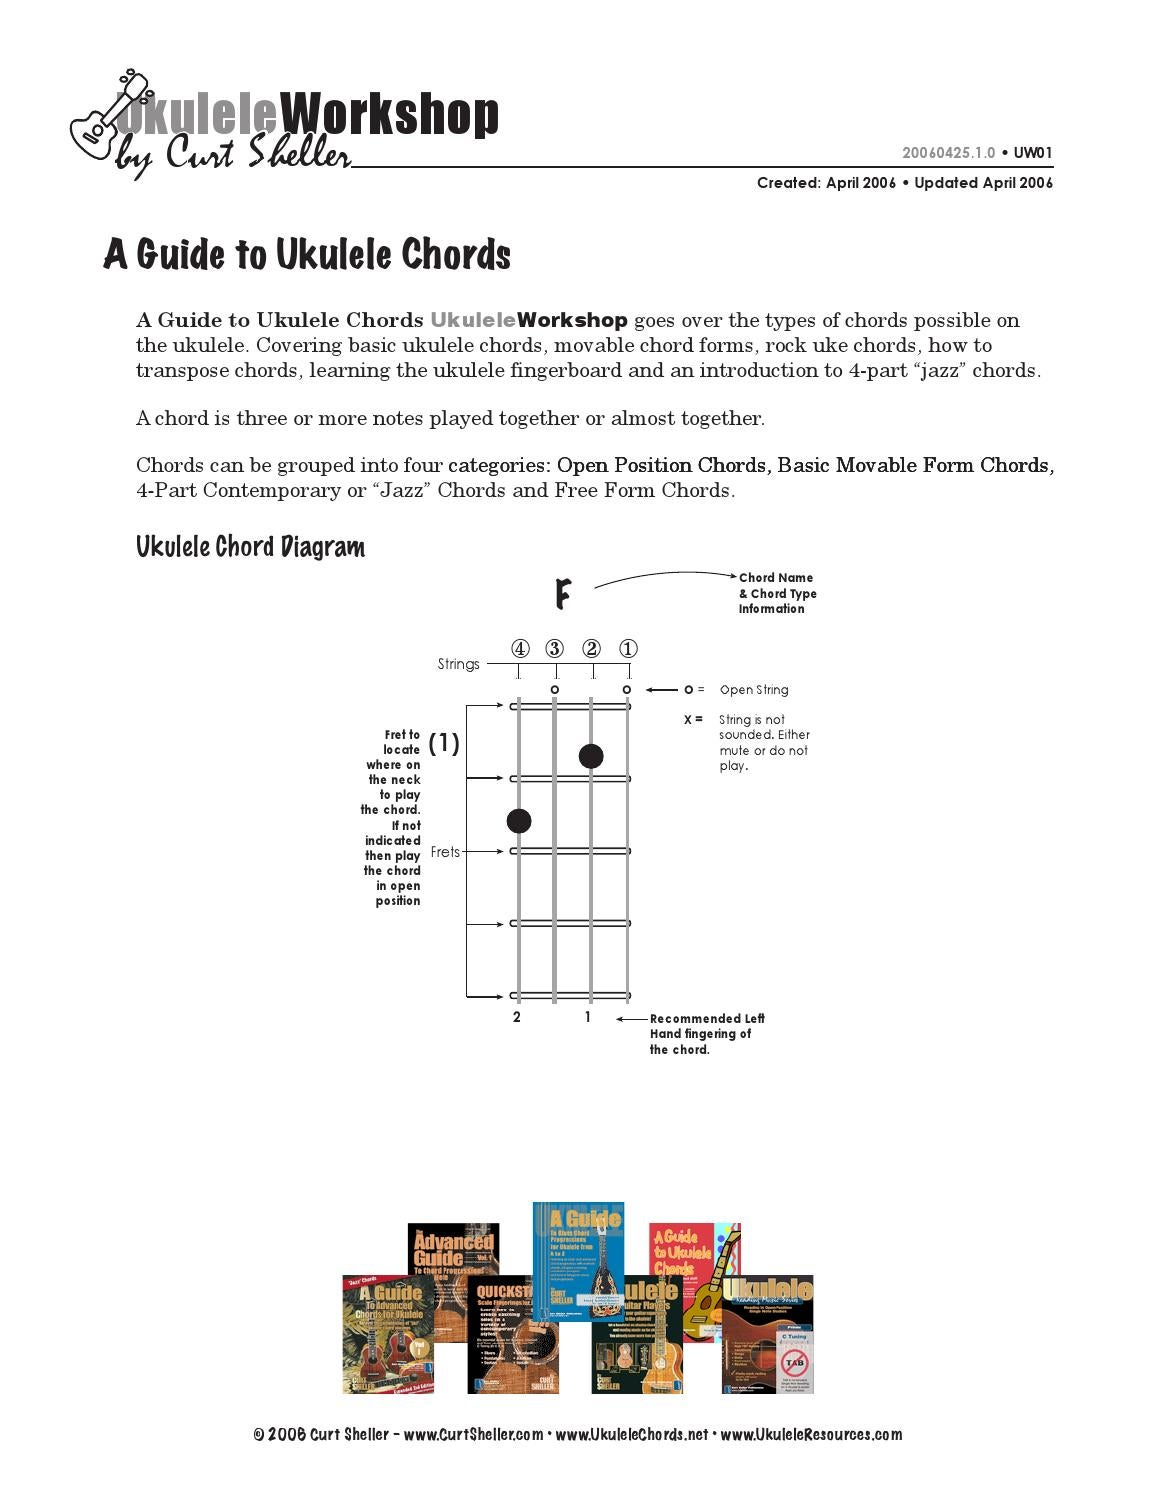 A guide to ukulele chords curt sheller by qrispe issuu hexwebz Choice Image